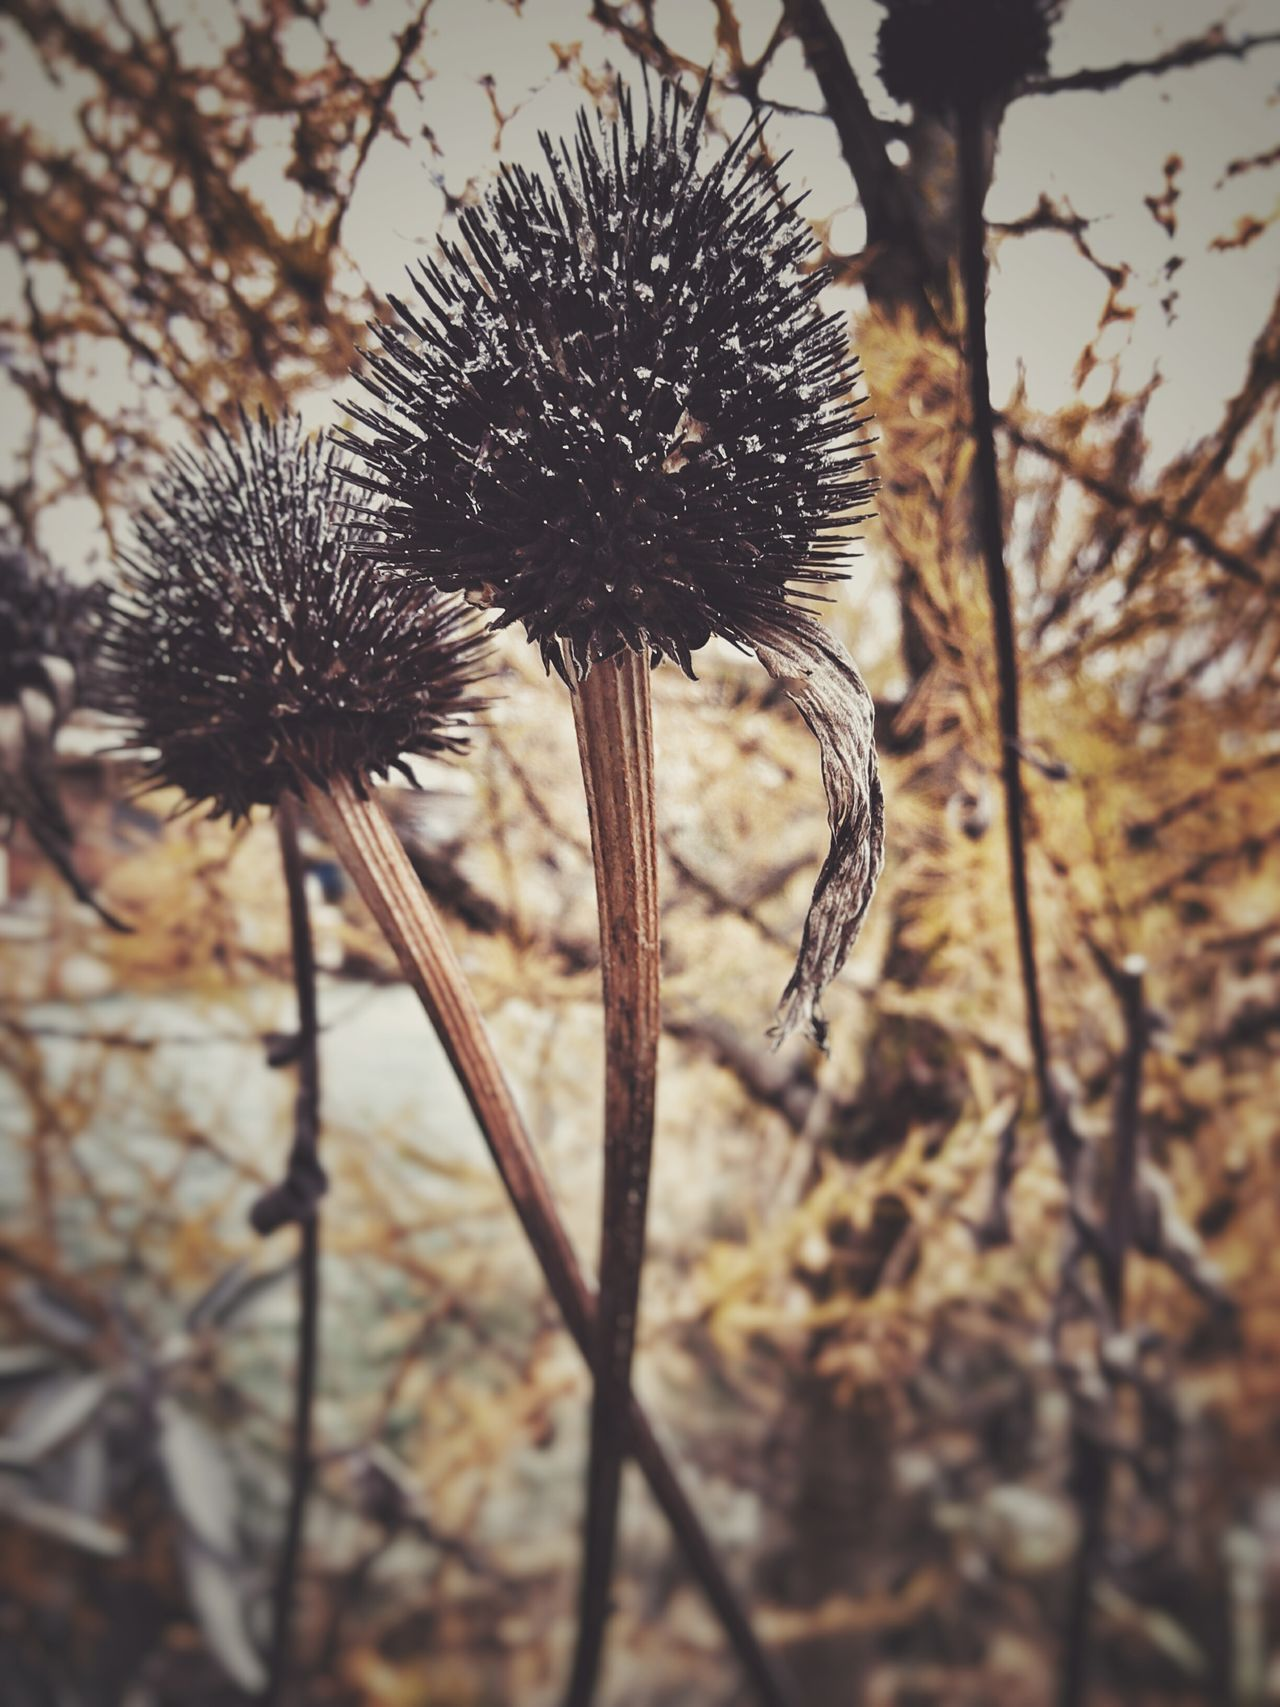 Echinacea Echinacea Purpurea Autumn Faded Beauty Melancholic Nature Focus On Foreground Plant Growth Flower Beauty In Nature Thistle Close-up Outdoors Dried Plant No People Fragility Dried Flower Head Autumn Colors